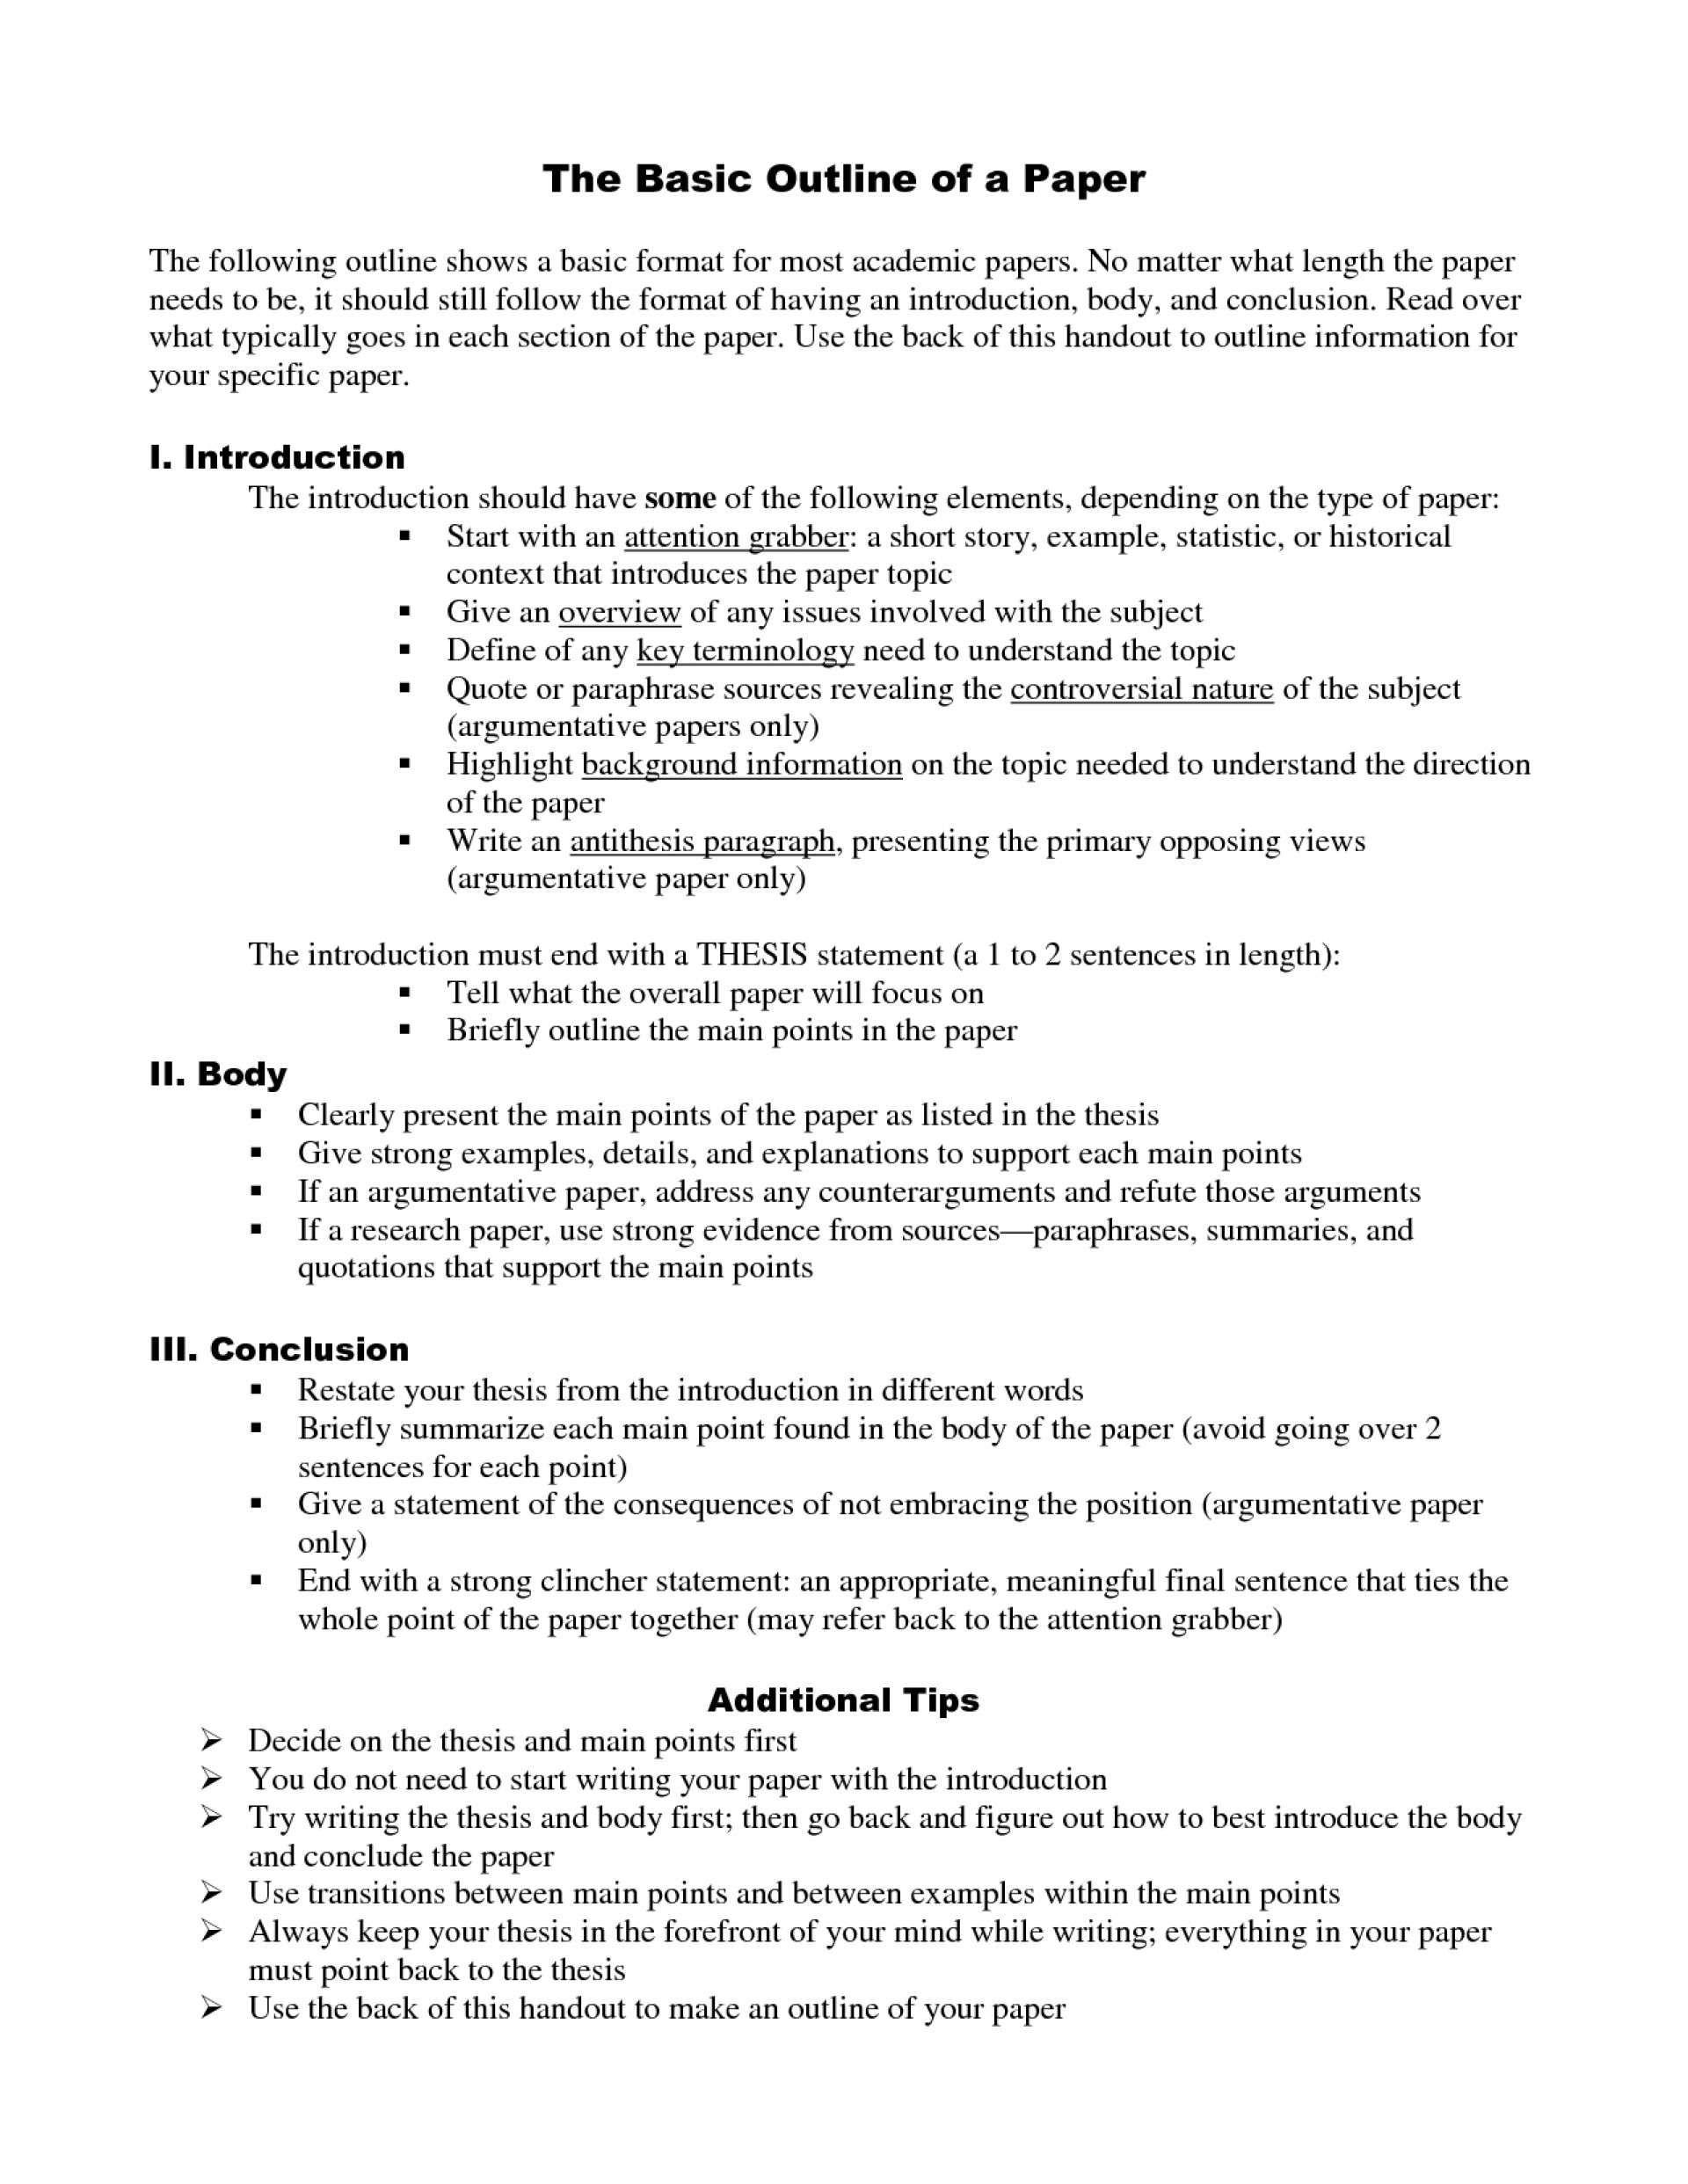 017 Paper Outline Research Template 7gkv1usl Example Ofn For Sensational Of An A Informal Examples Writing In Apa Format 1920